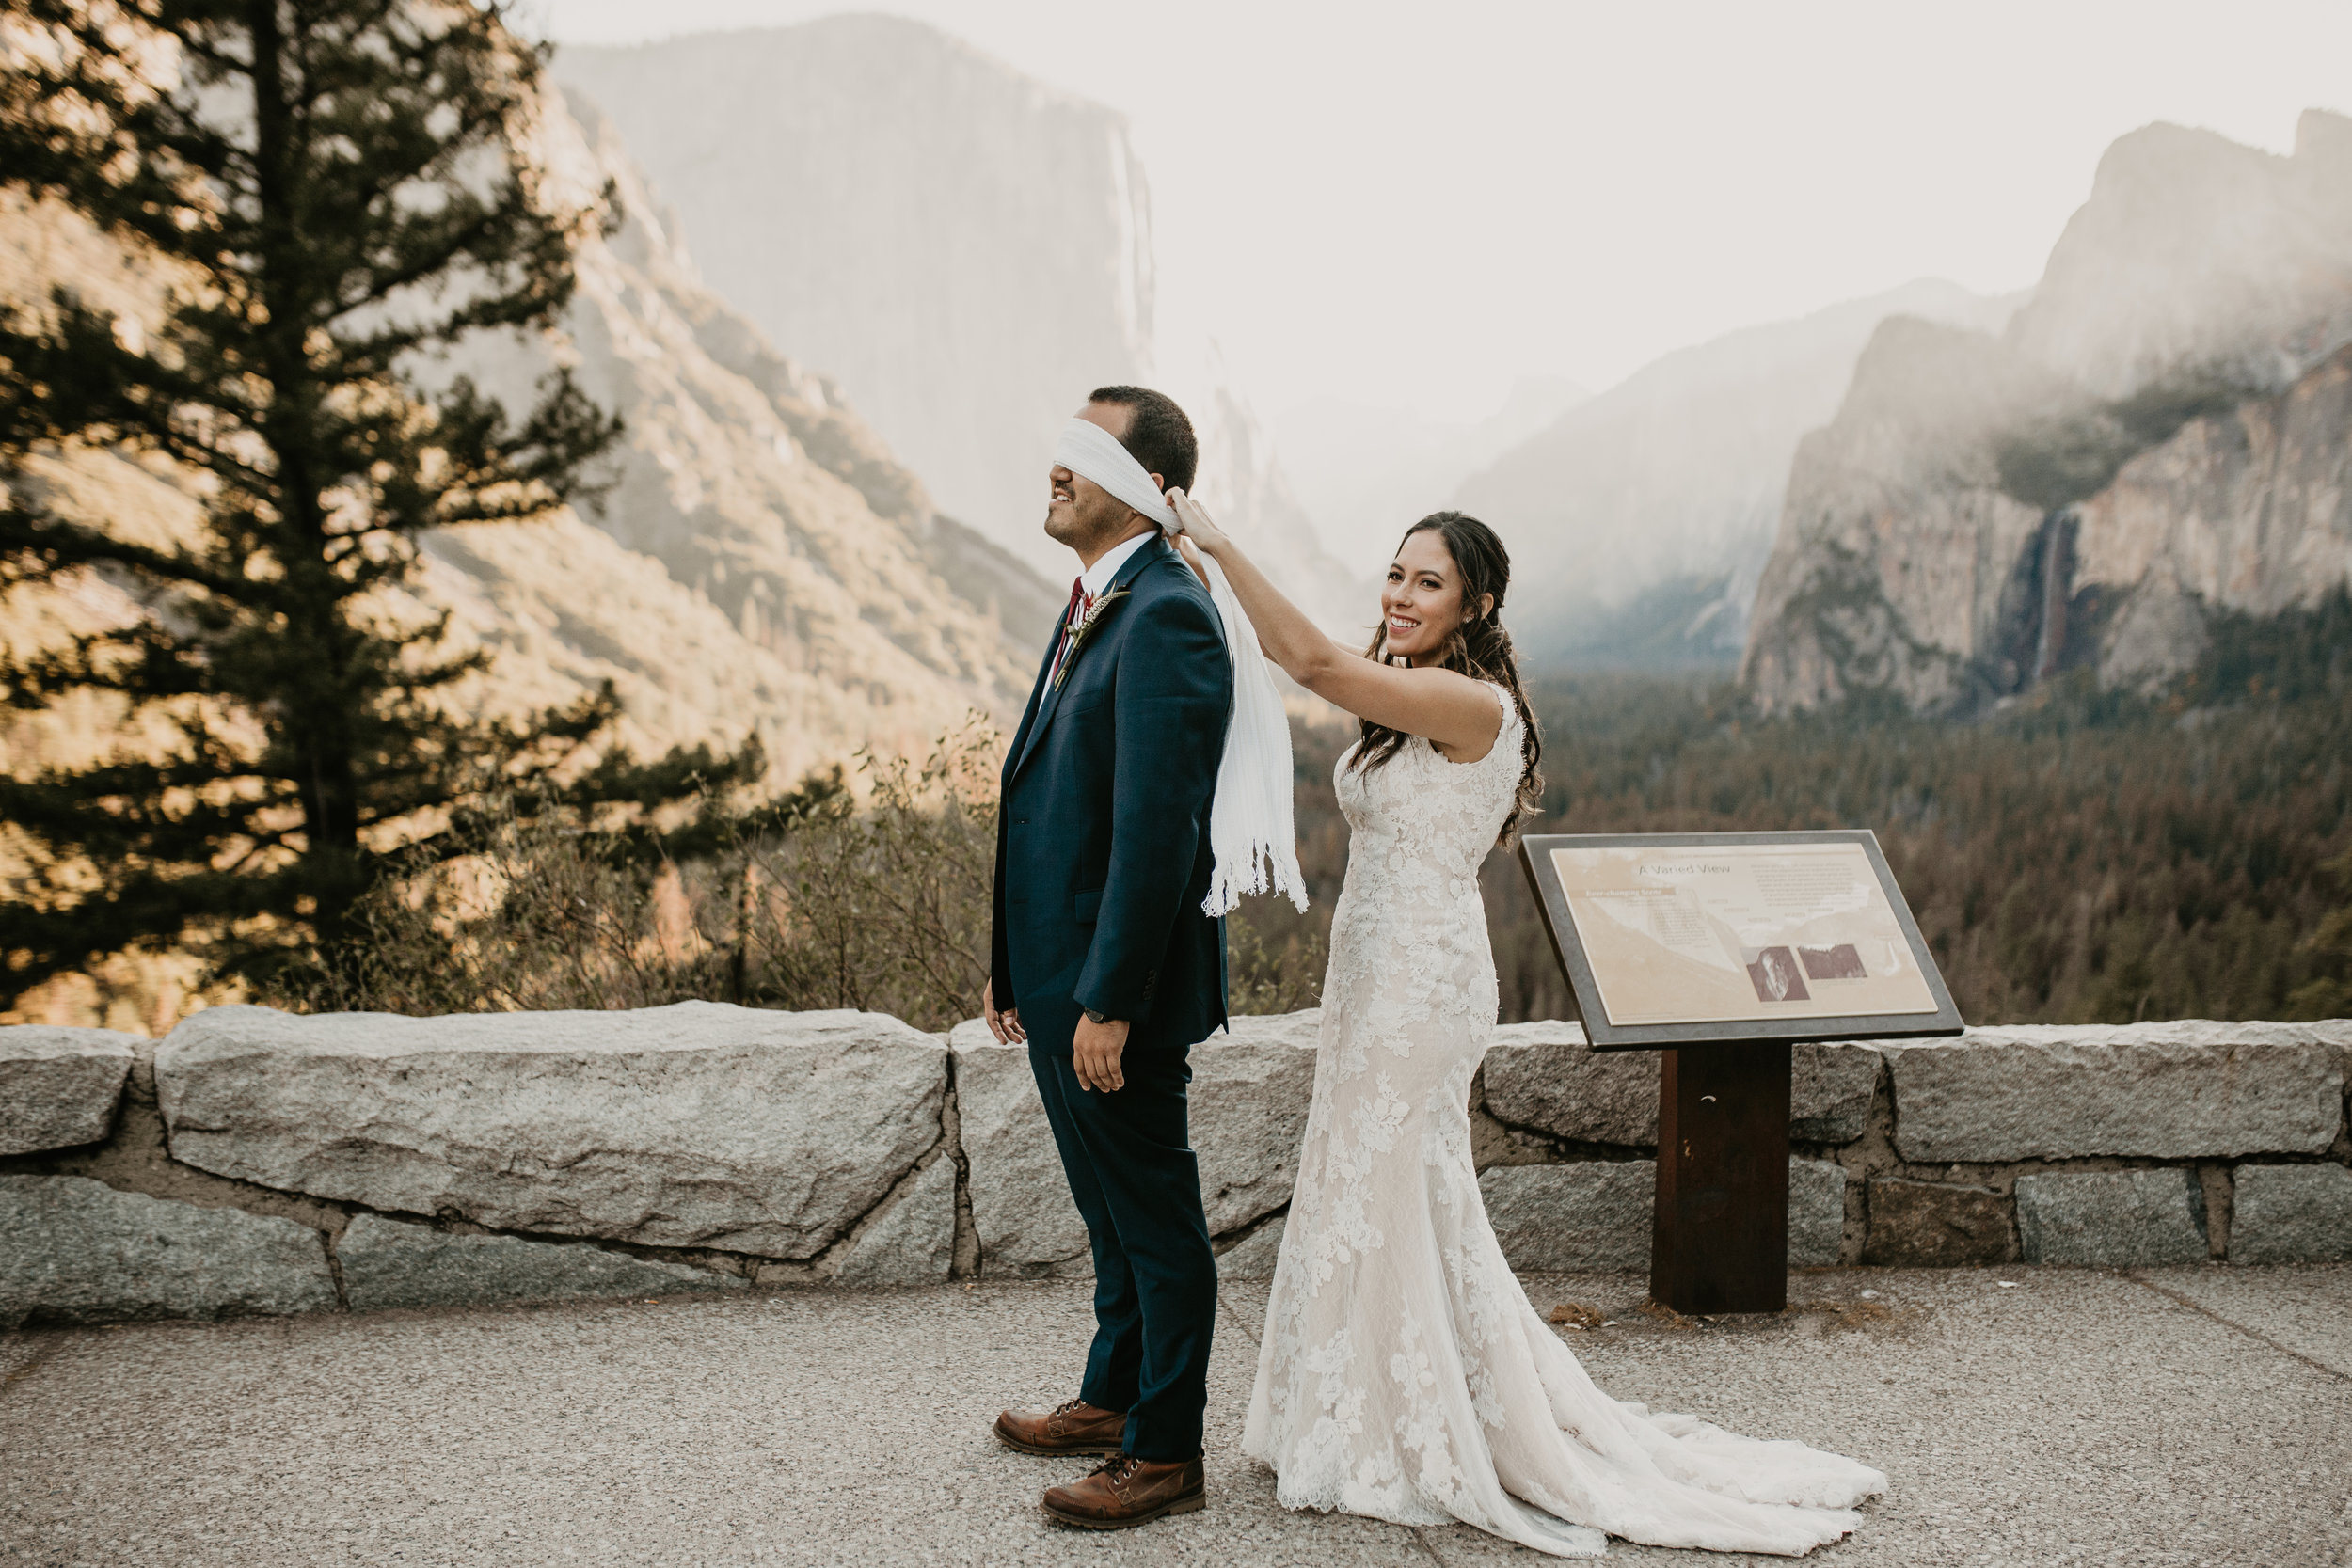 nicole-daacke-photography-intimate-elopement-wedding-yosemite-national-park-california-taft-point-sunset-photos-yosemite-valley-tunnel-view-first-look-sunrise-golden-granite-hiking-adventure-wedding-adventurous-elopement-photographer-2.jpg